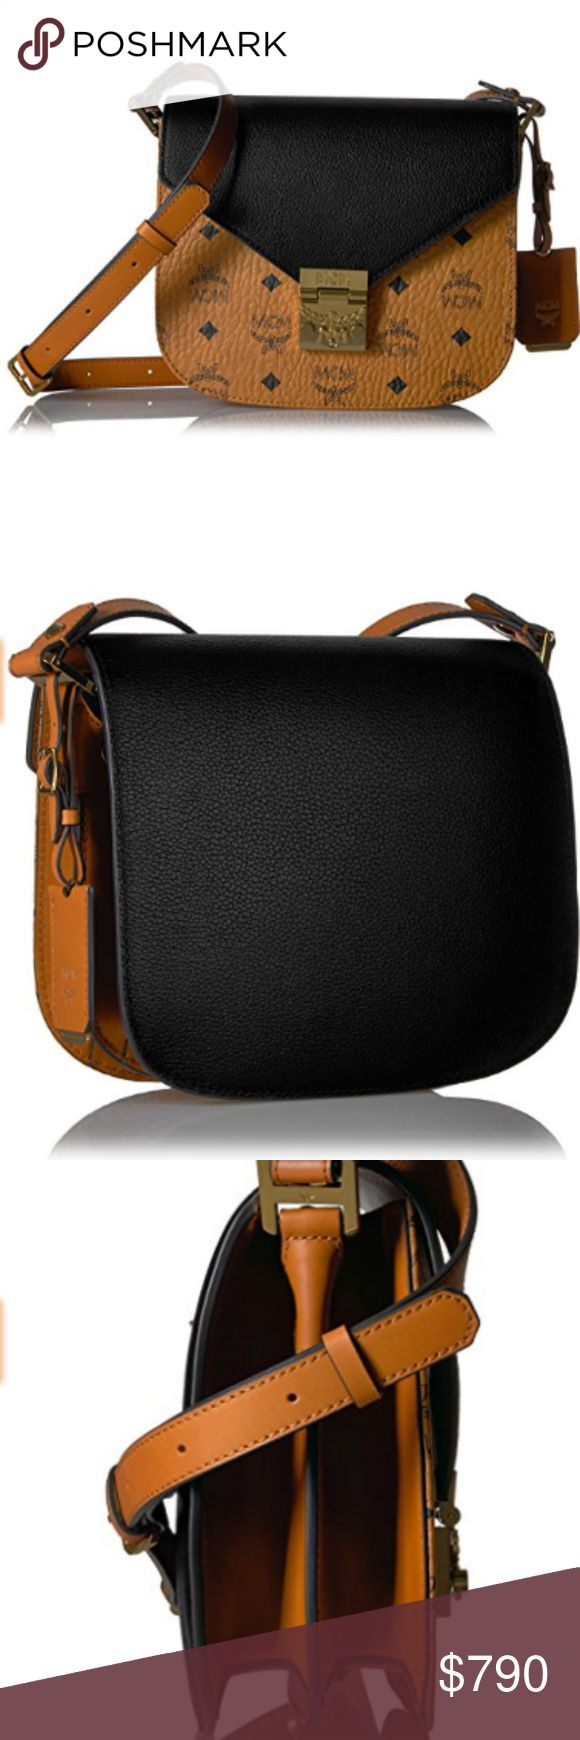 """NWT AUTHENTIC MCM Shoulder Bag VERIFIED BY POSHMARK FOR AUTHENTICITY. BUY WITH CONFIDENCE      man made lining     push lock closure     24"""" shoulder drop     7.5"""" high     8.25"""" wide     pockets: 3 slip, 1 zip  RETAIL MSRP: $960 OUR PRICE: $790 (Save $$$ on TAX).  SHIPPING: Please allow 2-3 Business days. Thanks for shopping @ my Closet. MCM Bags Shoulder Bags"""